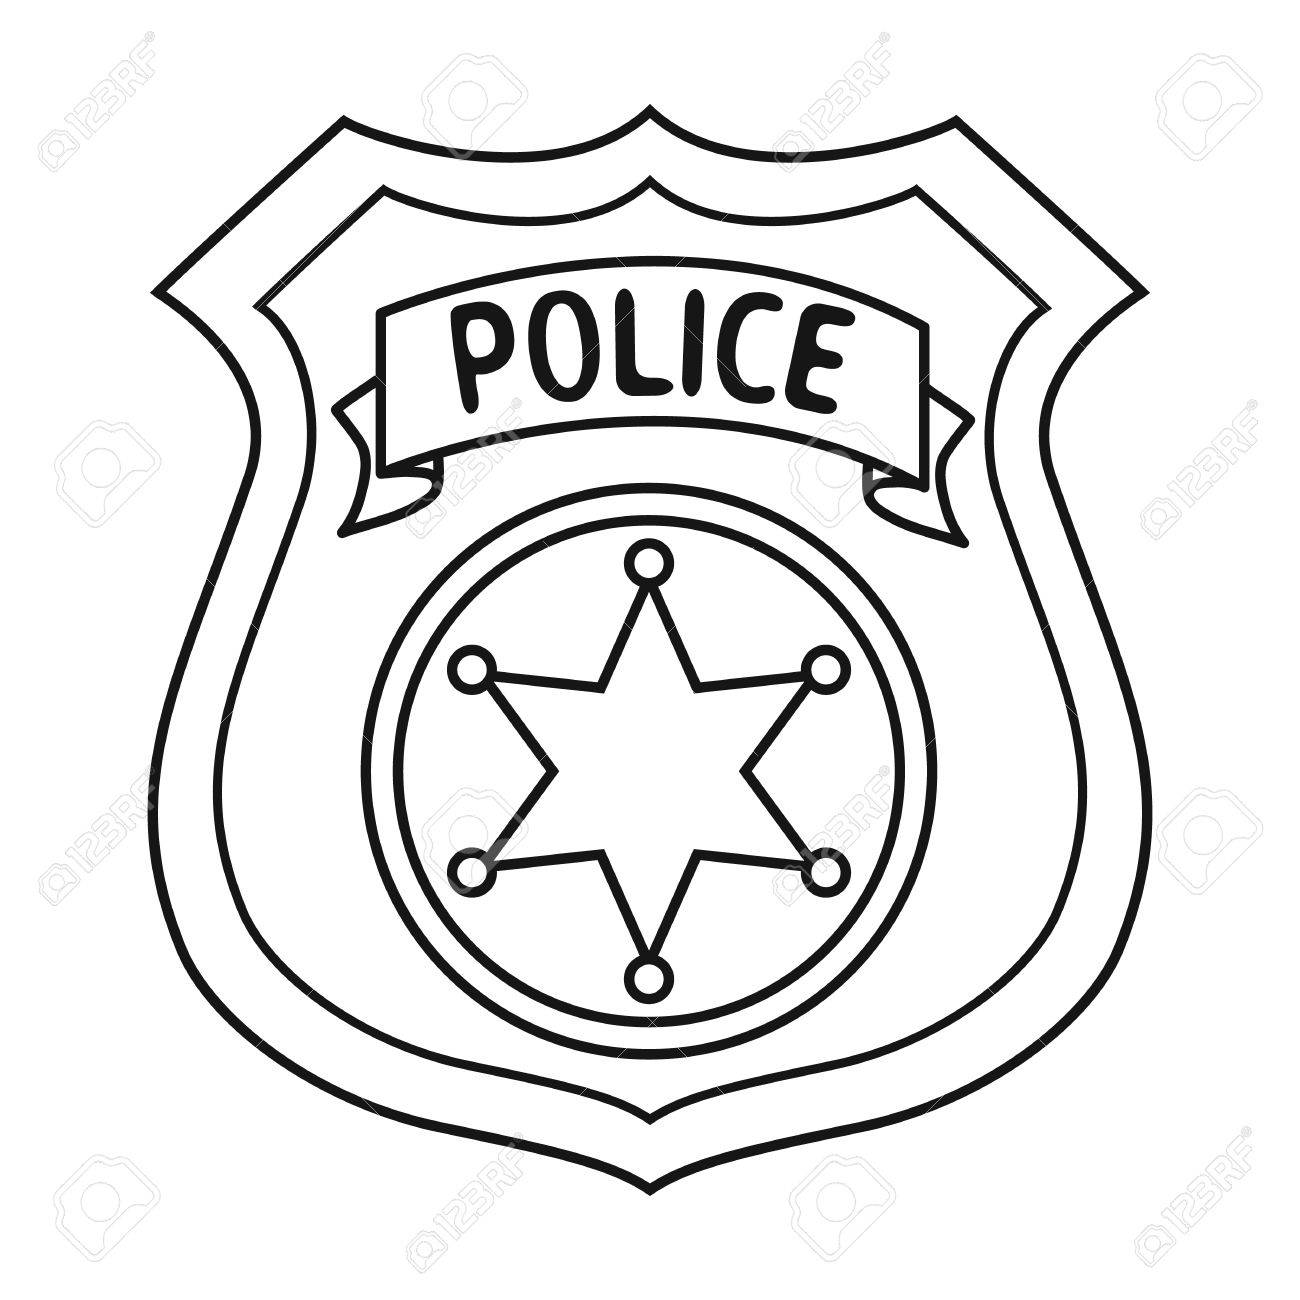 Cop clipart police badge. Printable free download best